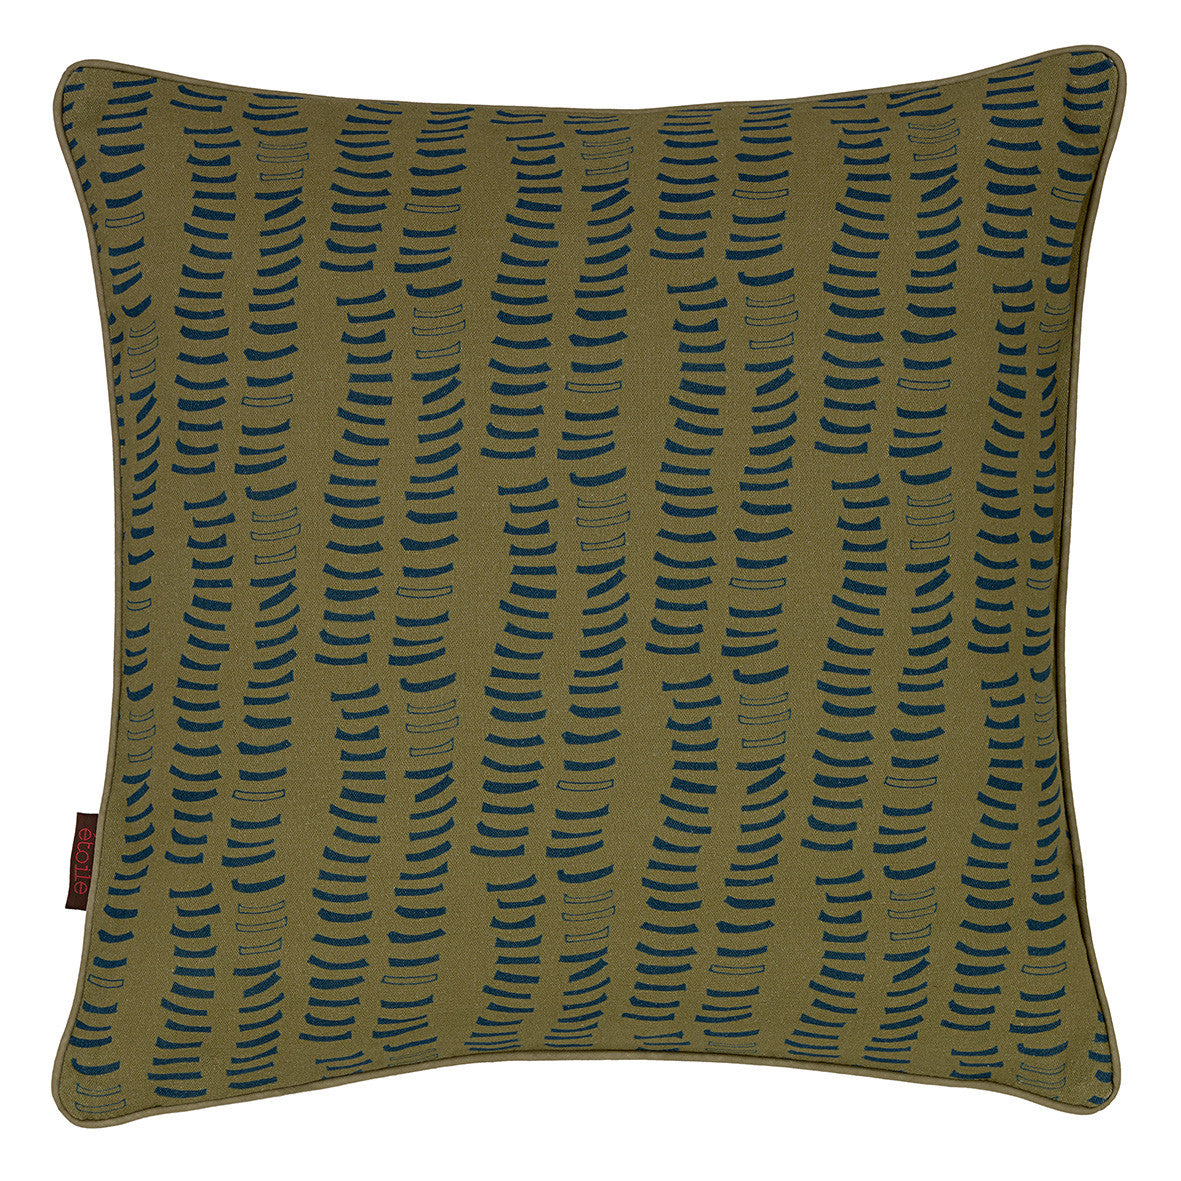 Graphic Adams Rib Pattern Linen Union Printed Cushion in Antique Moss Green and Petrol Blue